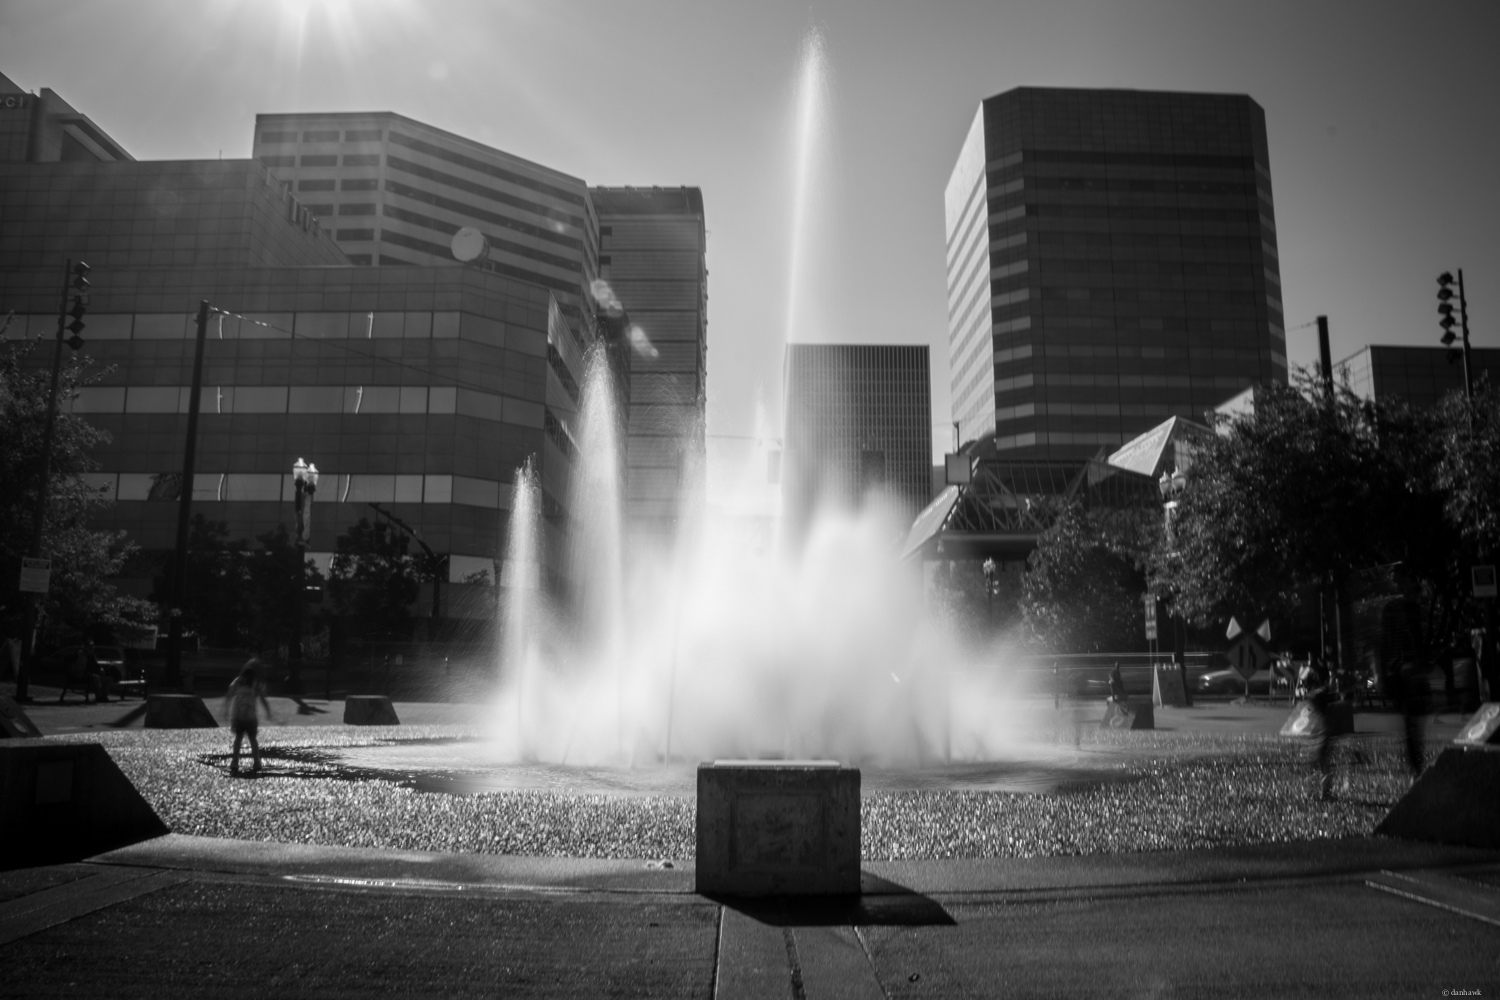 Waterfront Park Fountain | 365 Project | June 3rd, 2013 | 18mm, f/22, ISO 100, 1 sec, Variable Neutral Density Filter